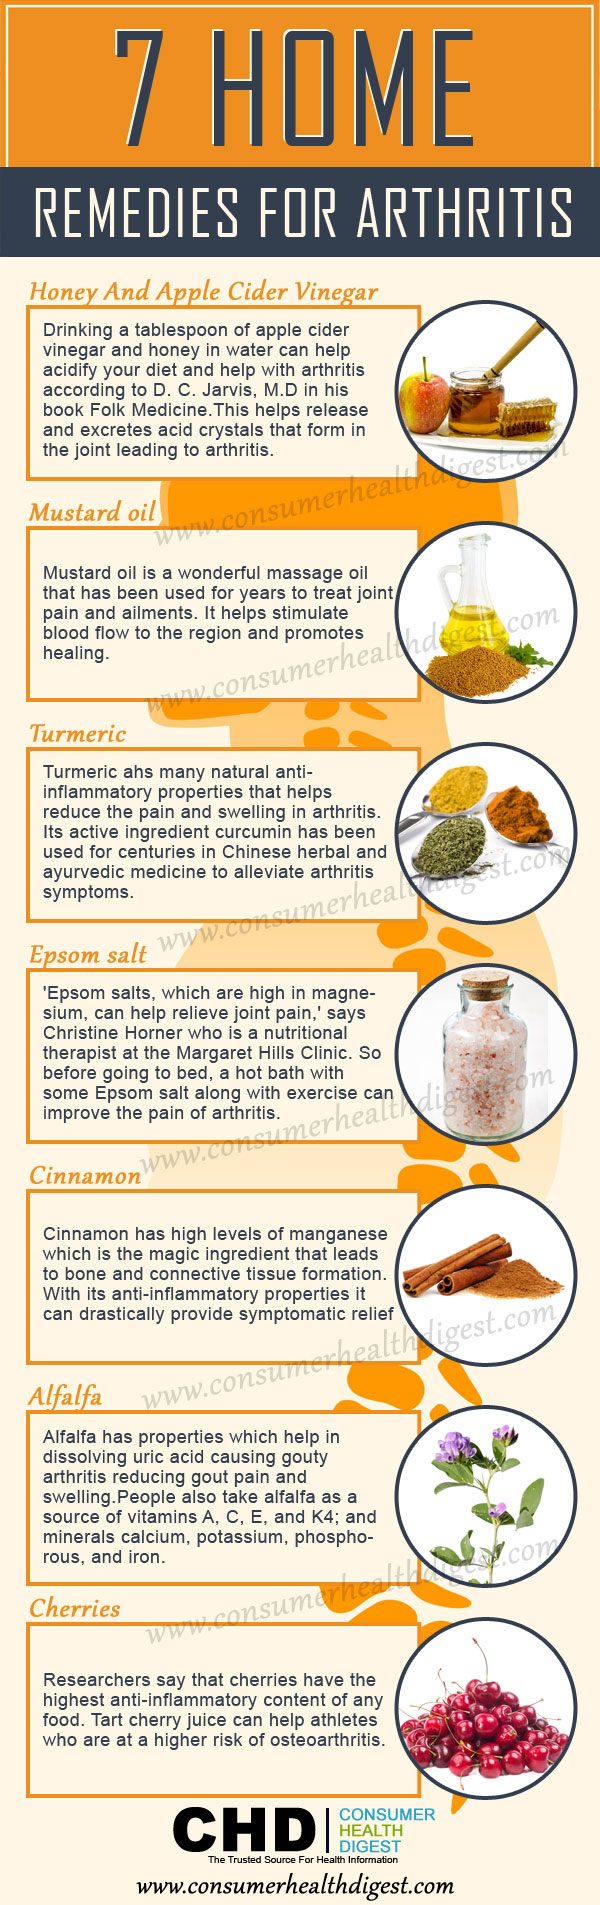 03-home-remedies-for-arthritis